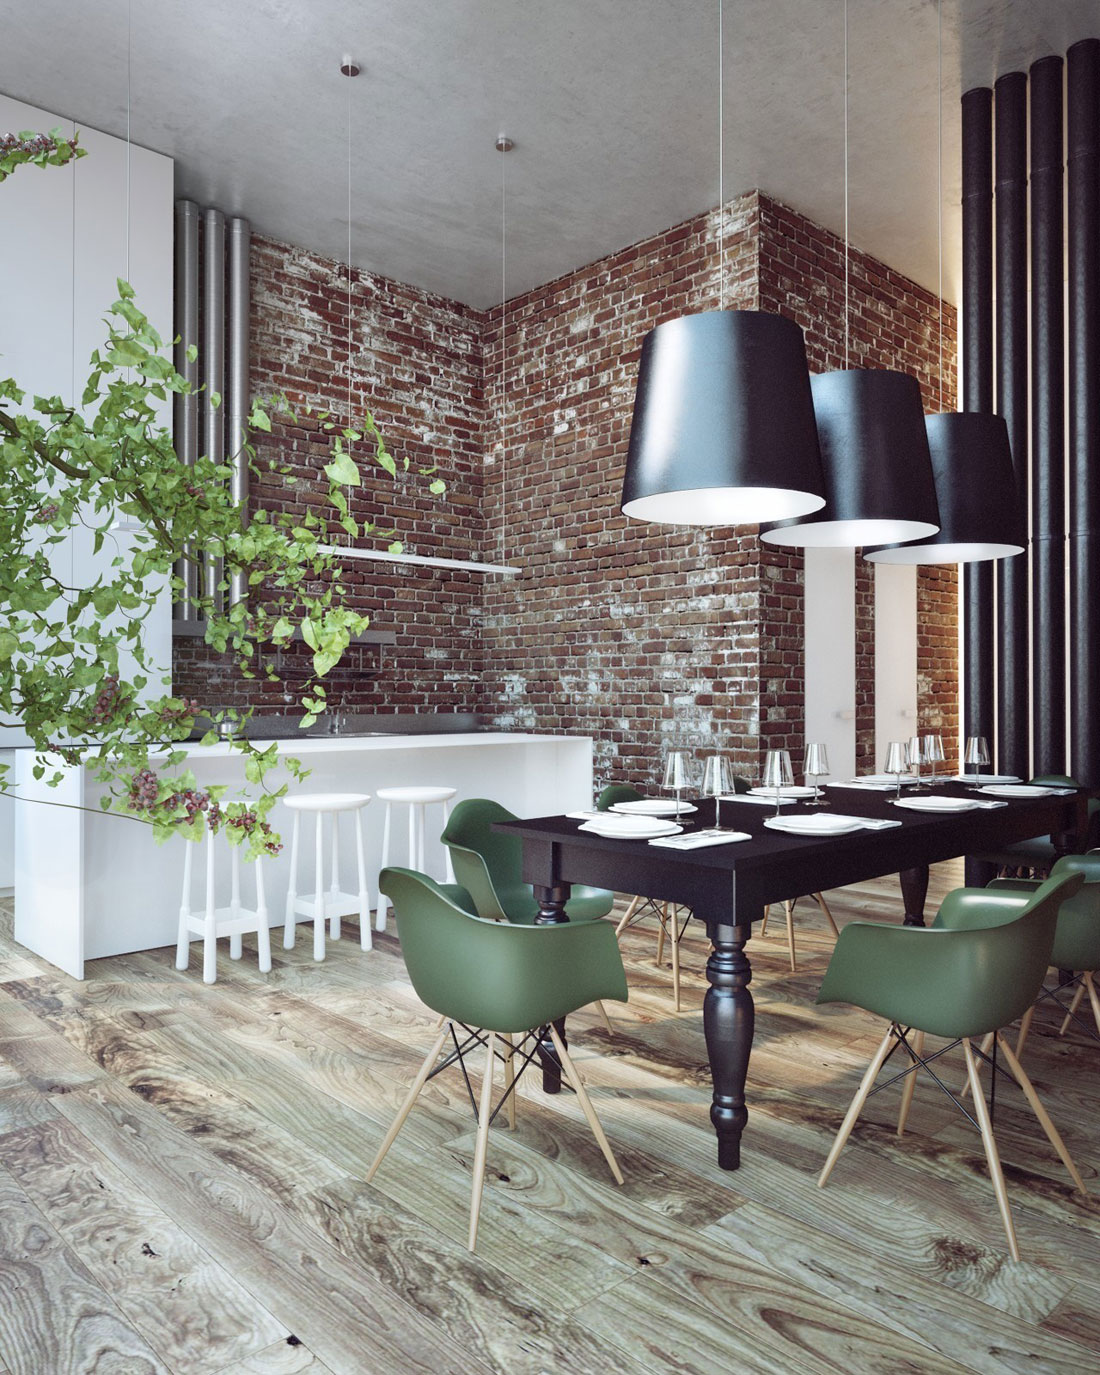 Penthouse Pokrov by Sergey Makhno Architect (14)